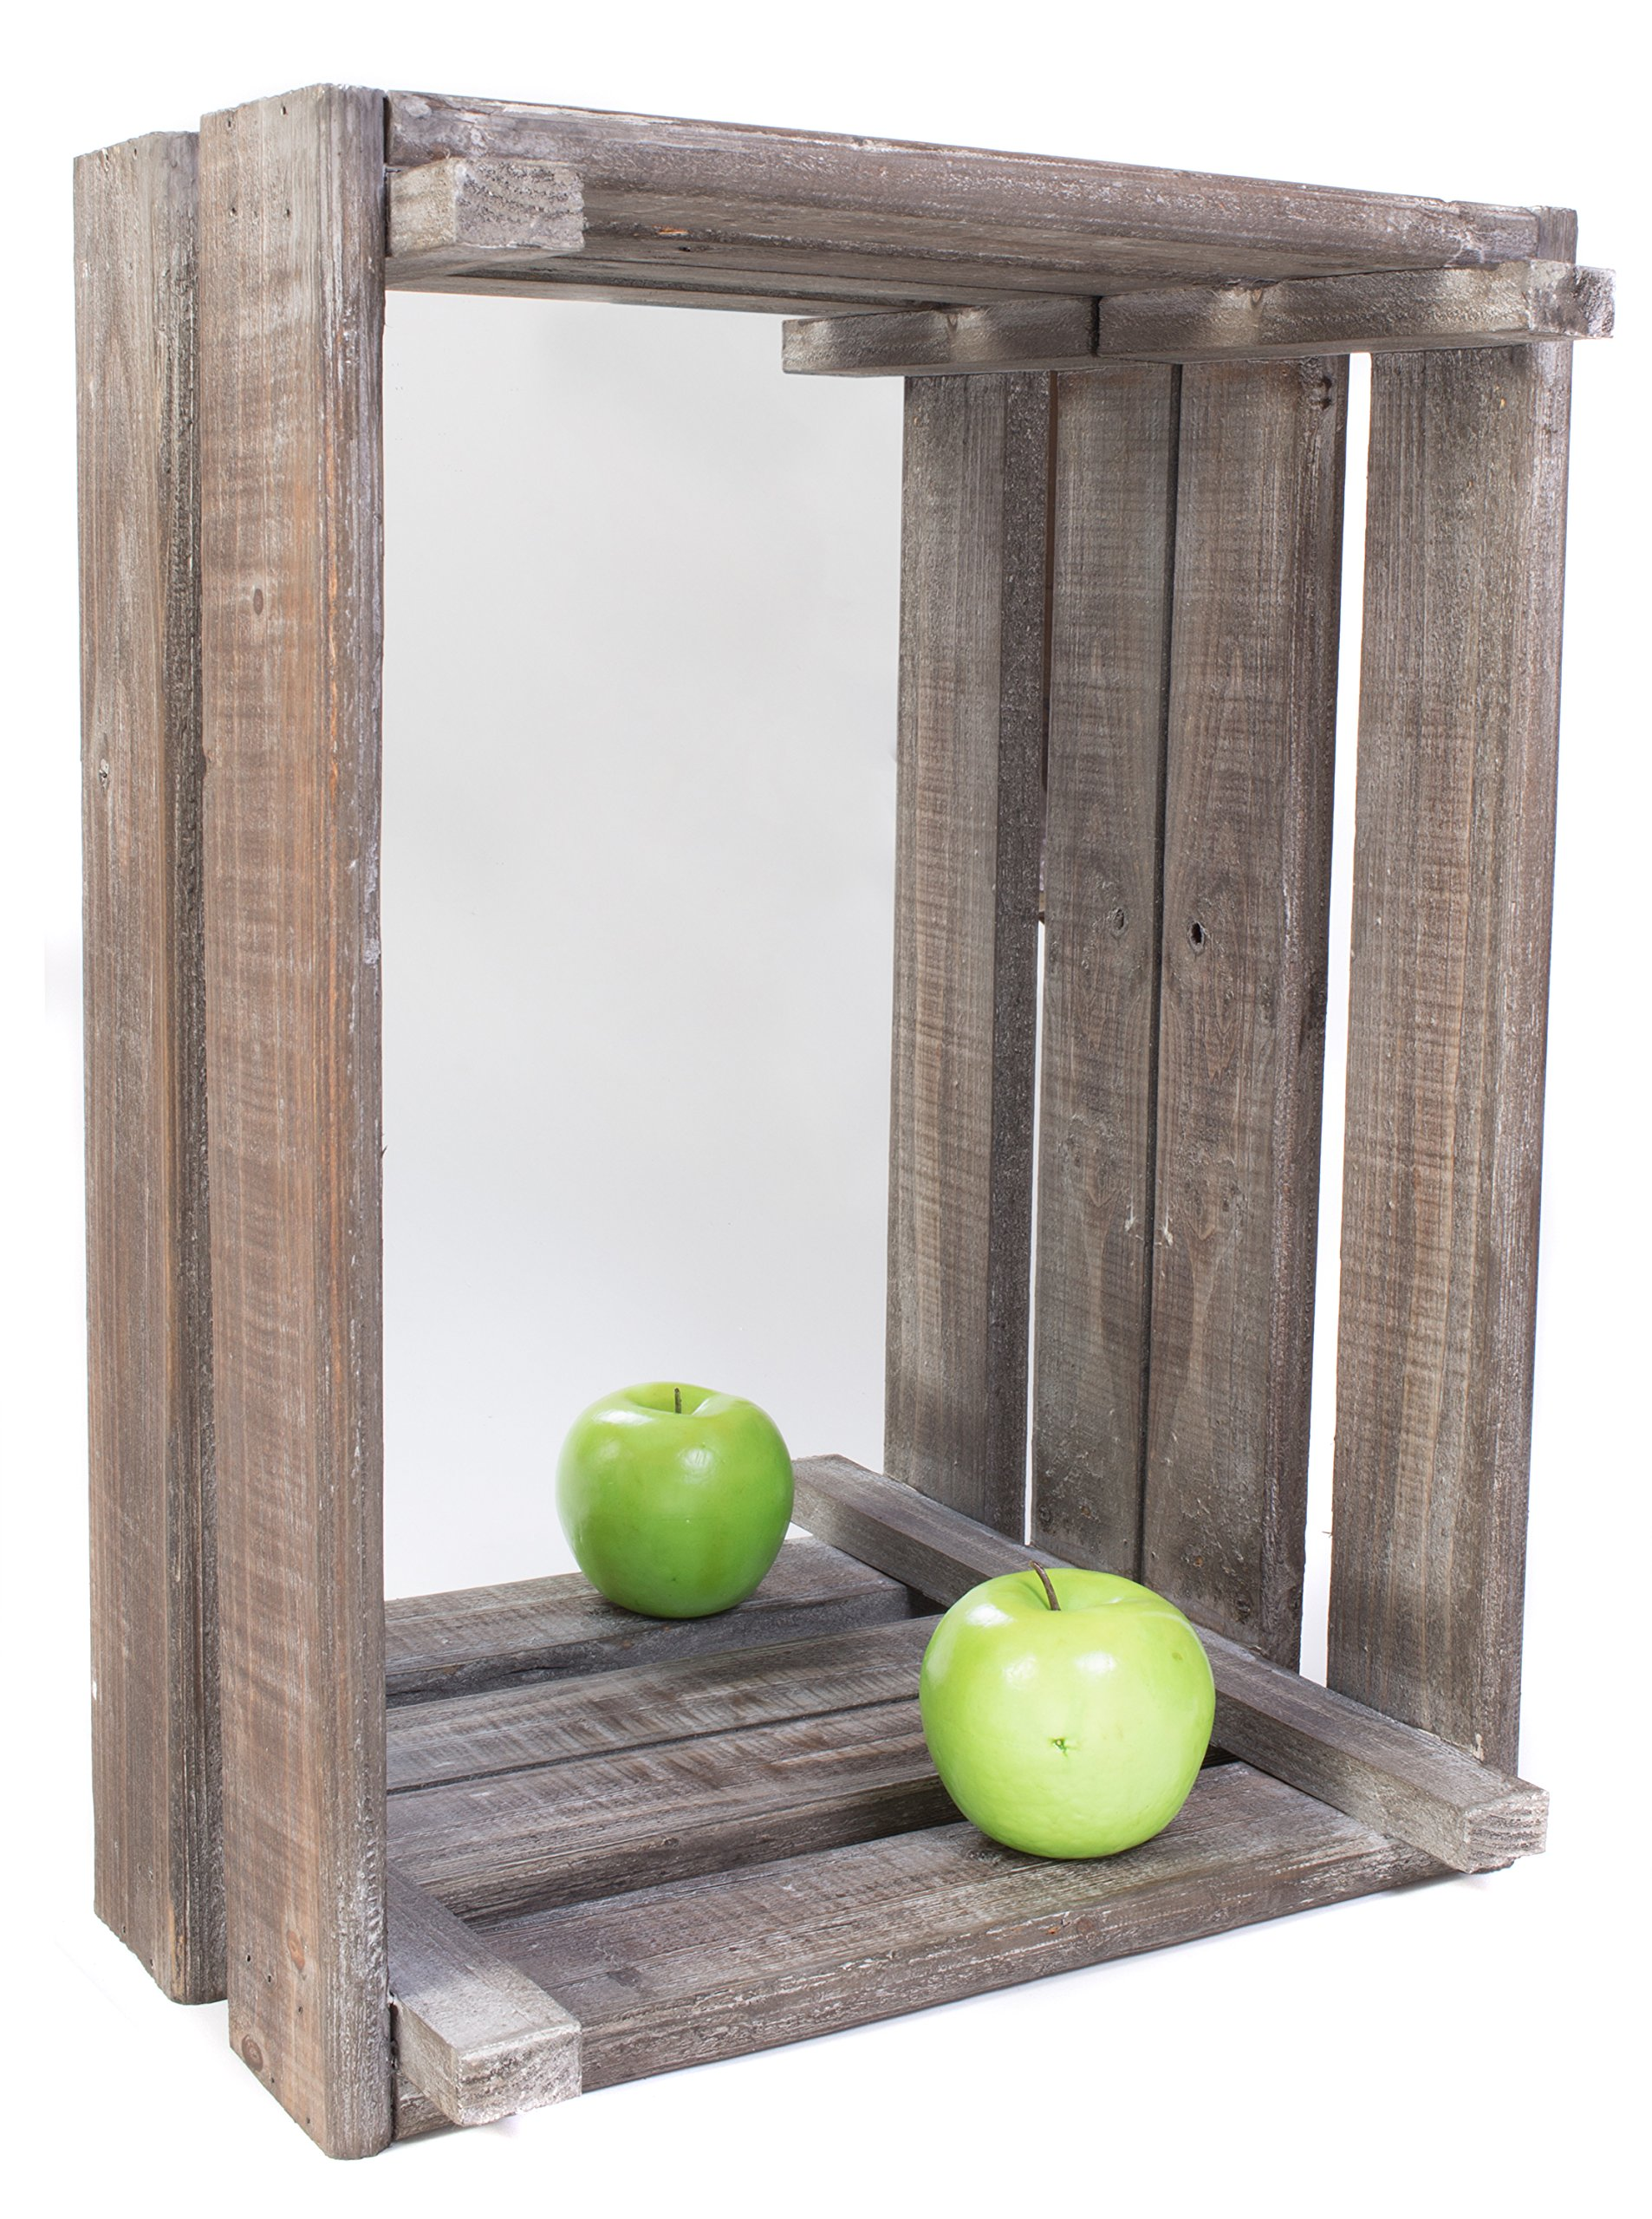 Primitive Décor Style Reclaimed Wooden Storage Crate Wall Mounted Mirror, 18''